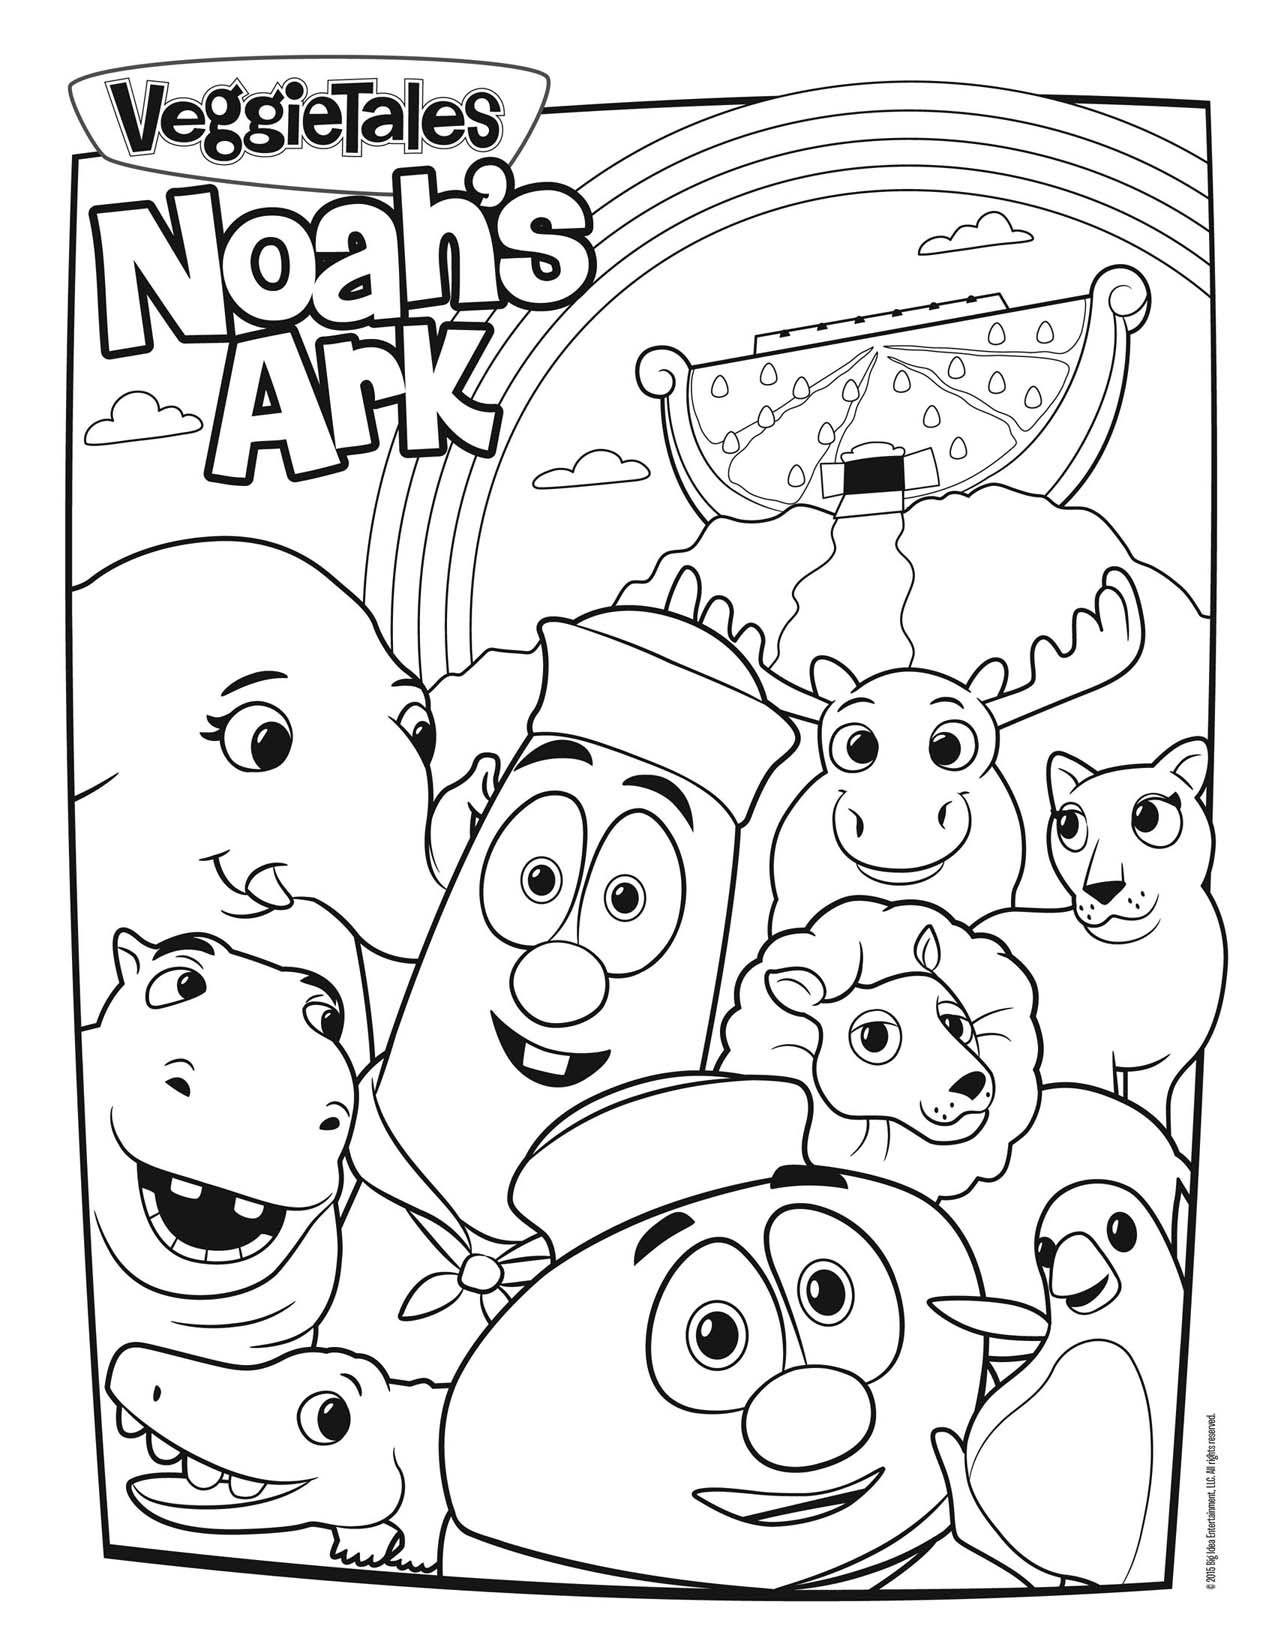 Veggie Tales Christmas Coloring Pages With VeggieTales Noah S Ark Page Pinterest